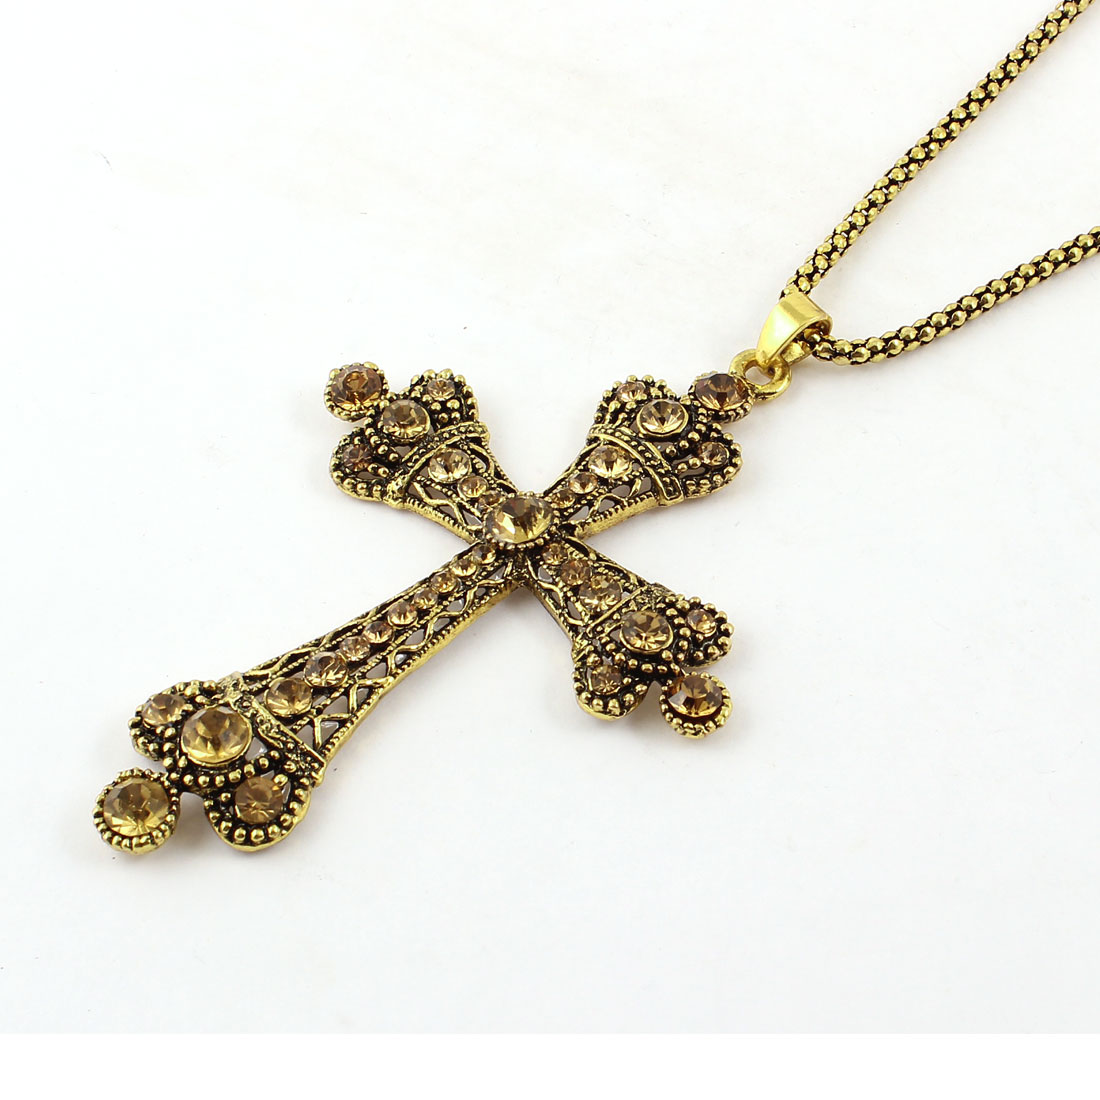 Ladies Faux Rhinestone Inlay Gold Tone Metal Cross Pendant Sweater Chain Necklace